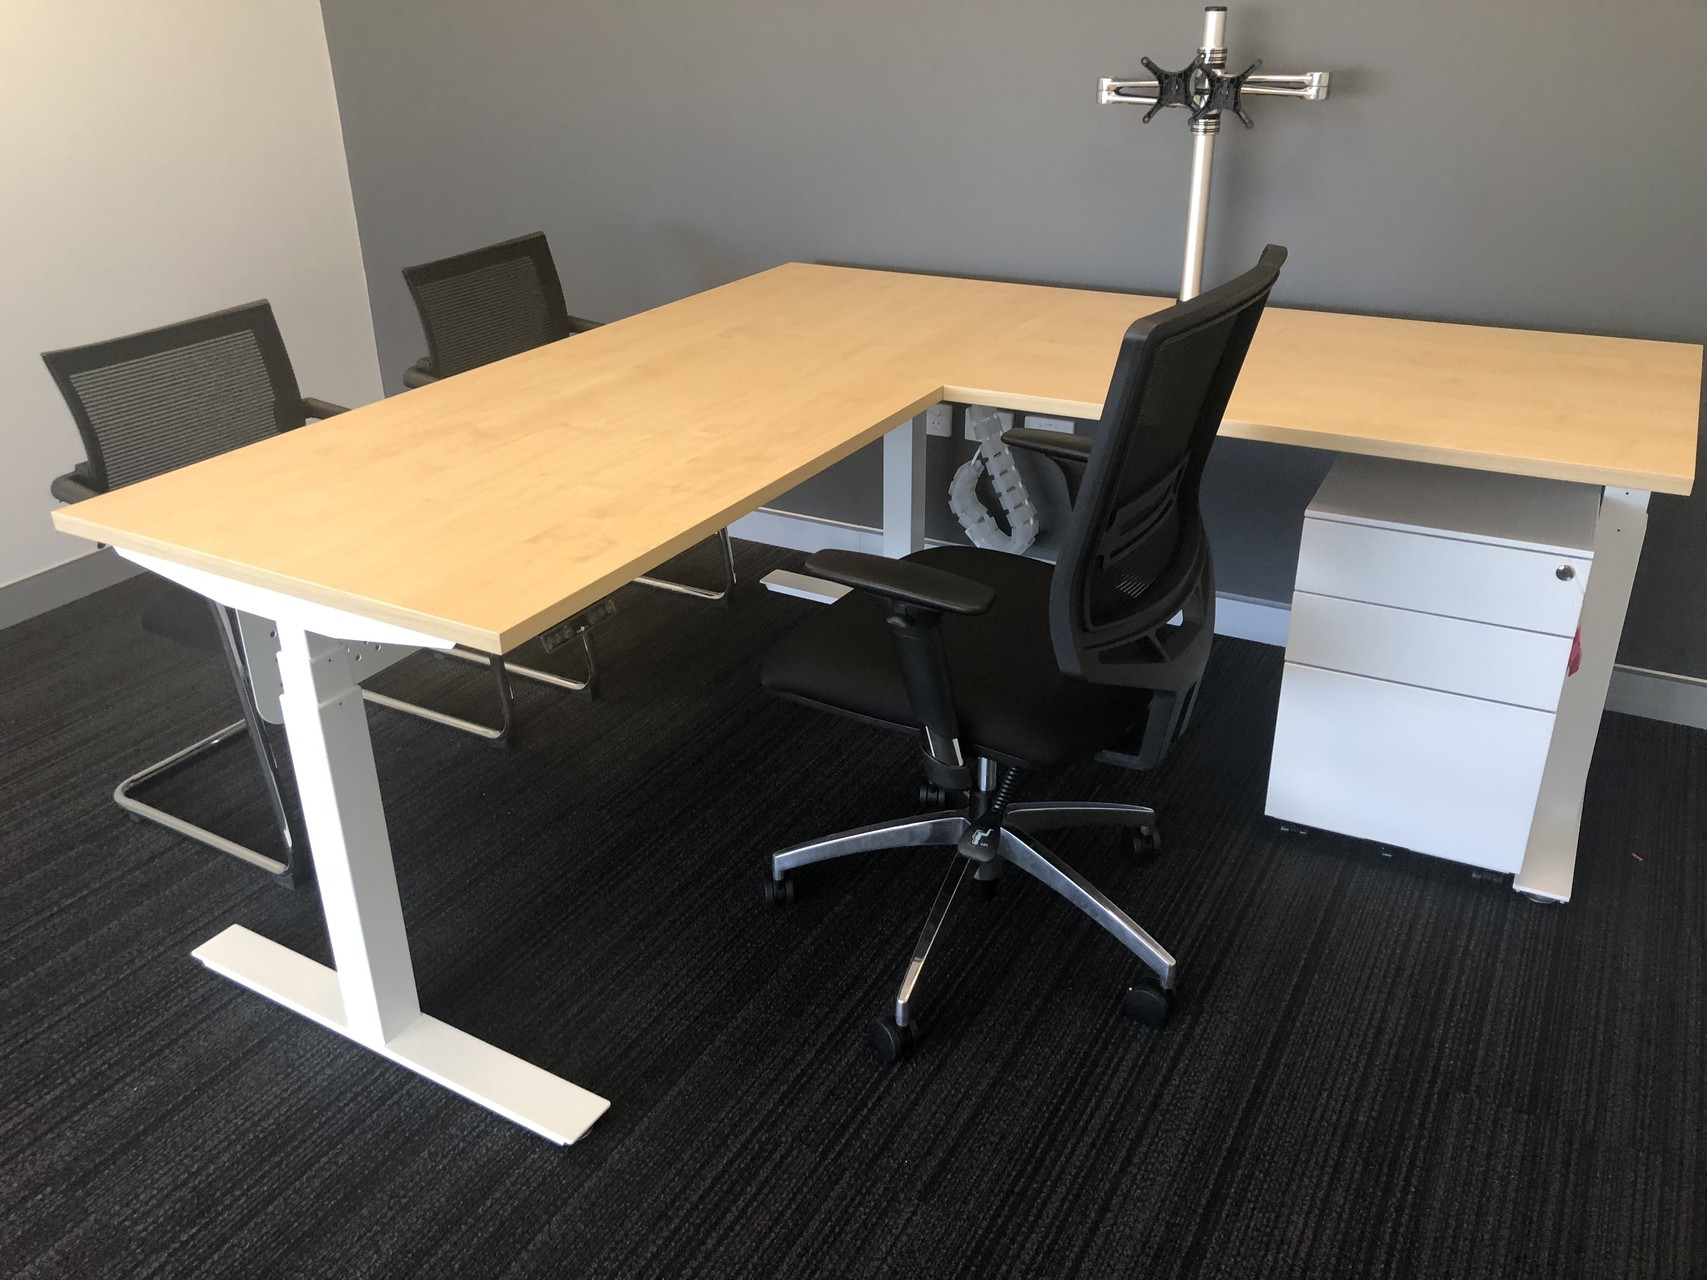 IMG_20181213_143838 L shape desk with chairs commercial office furniture